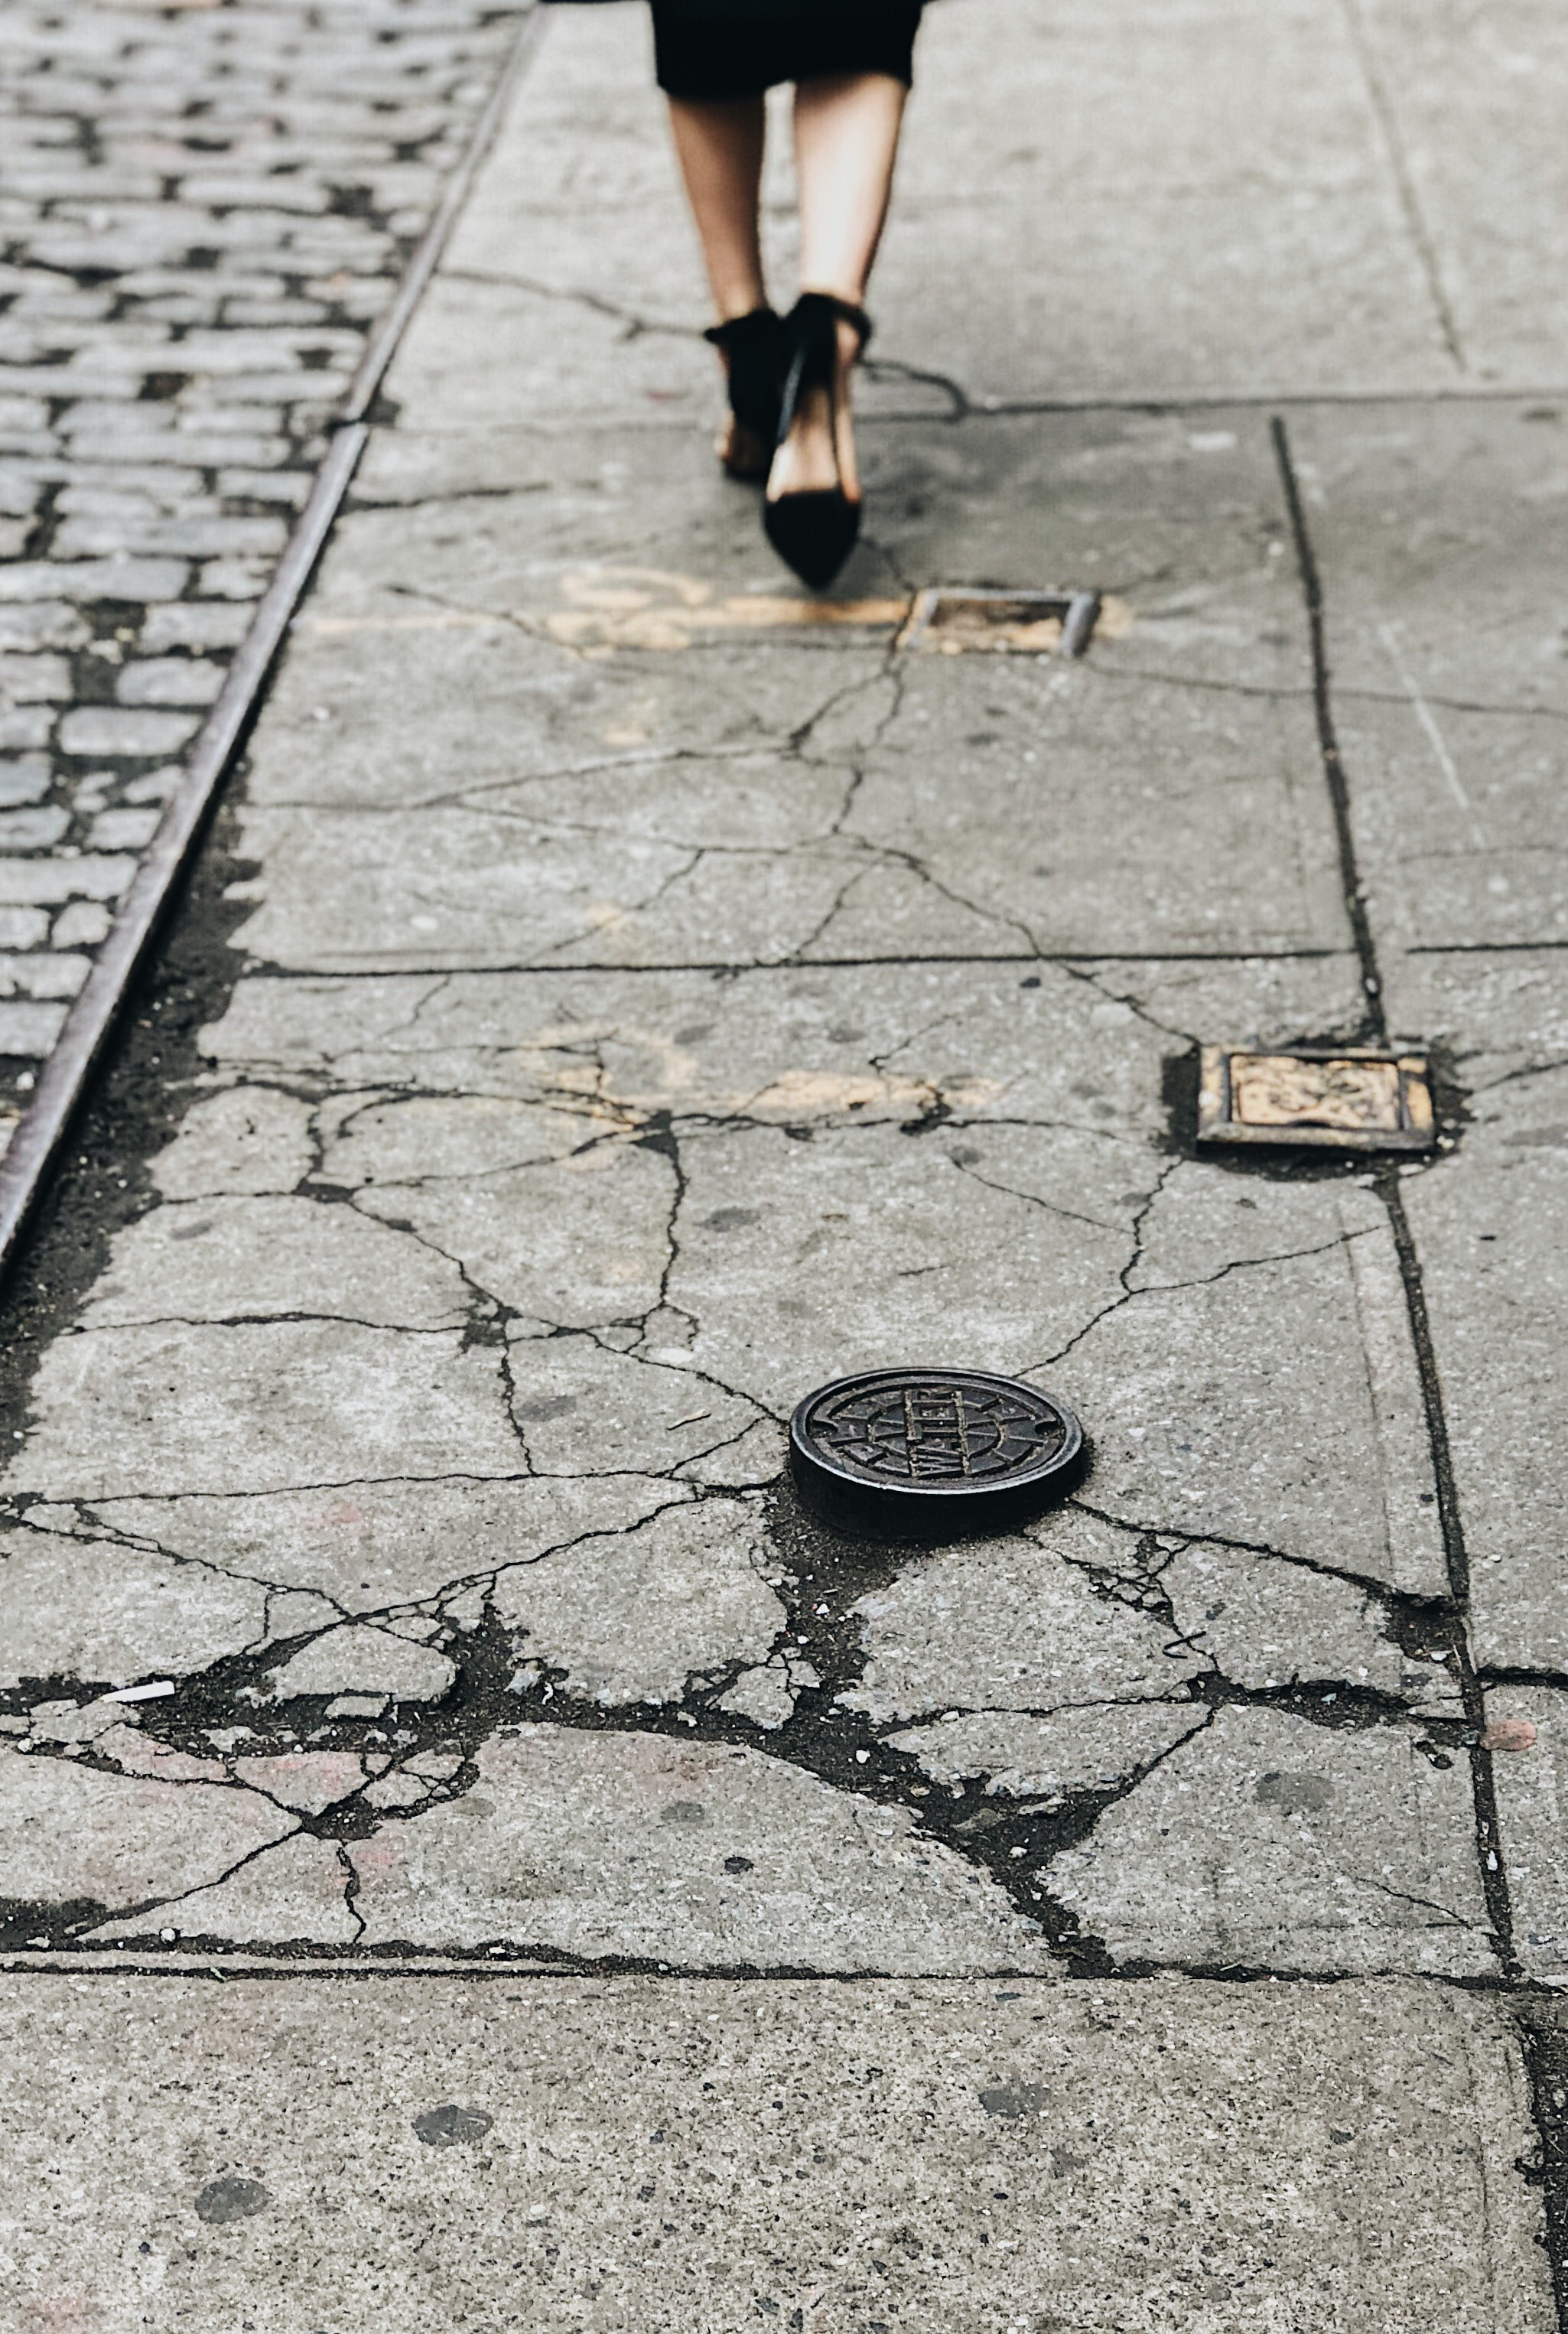 Woman walks away on cracked pavement